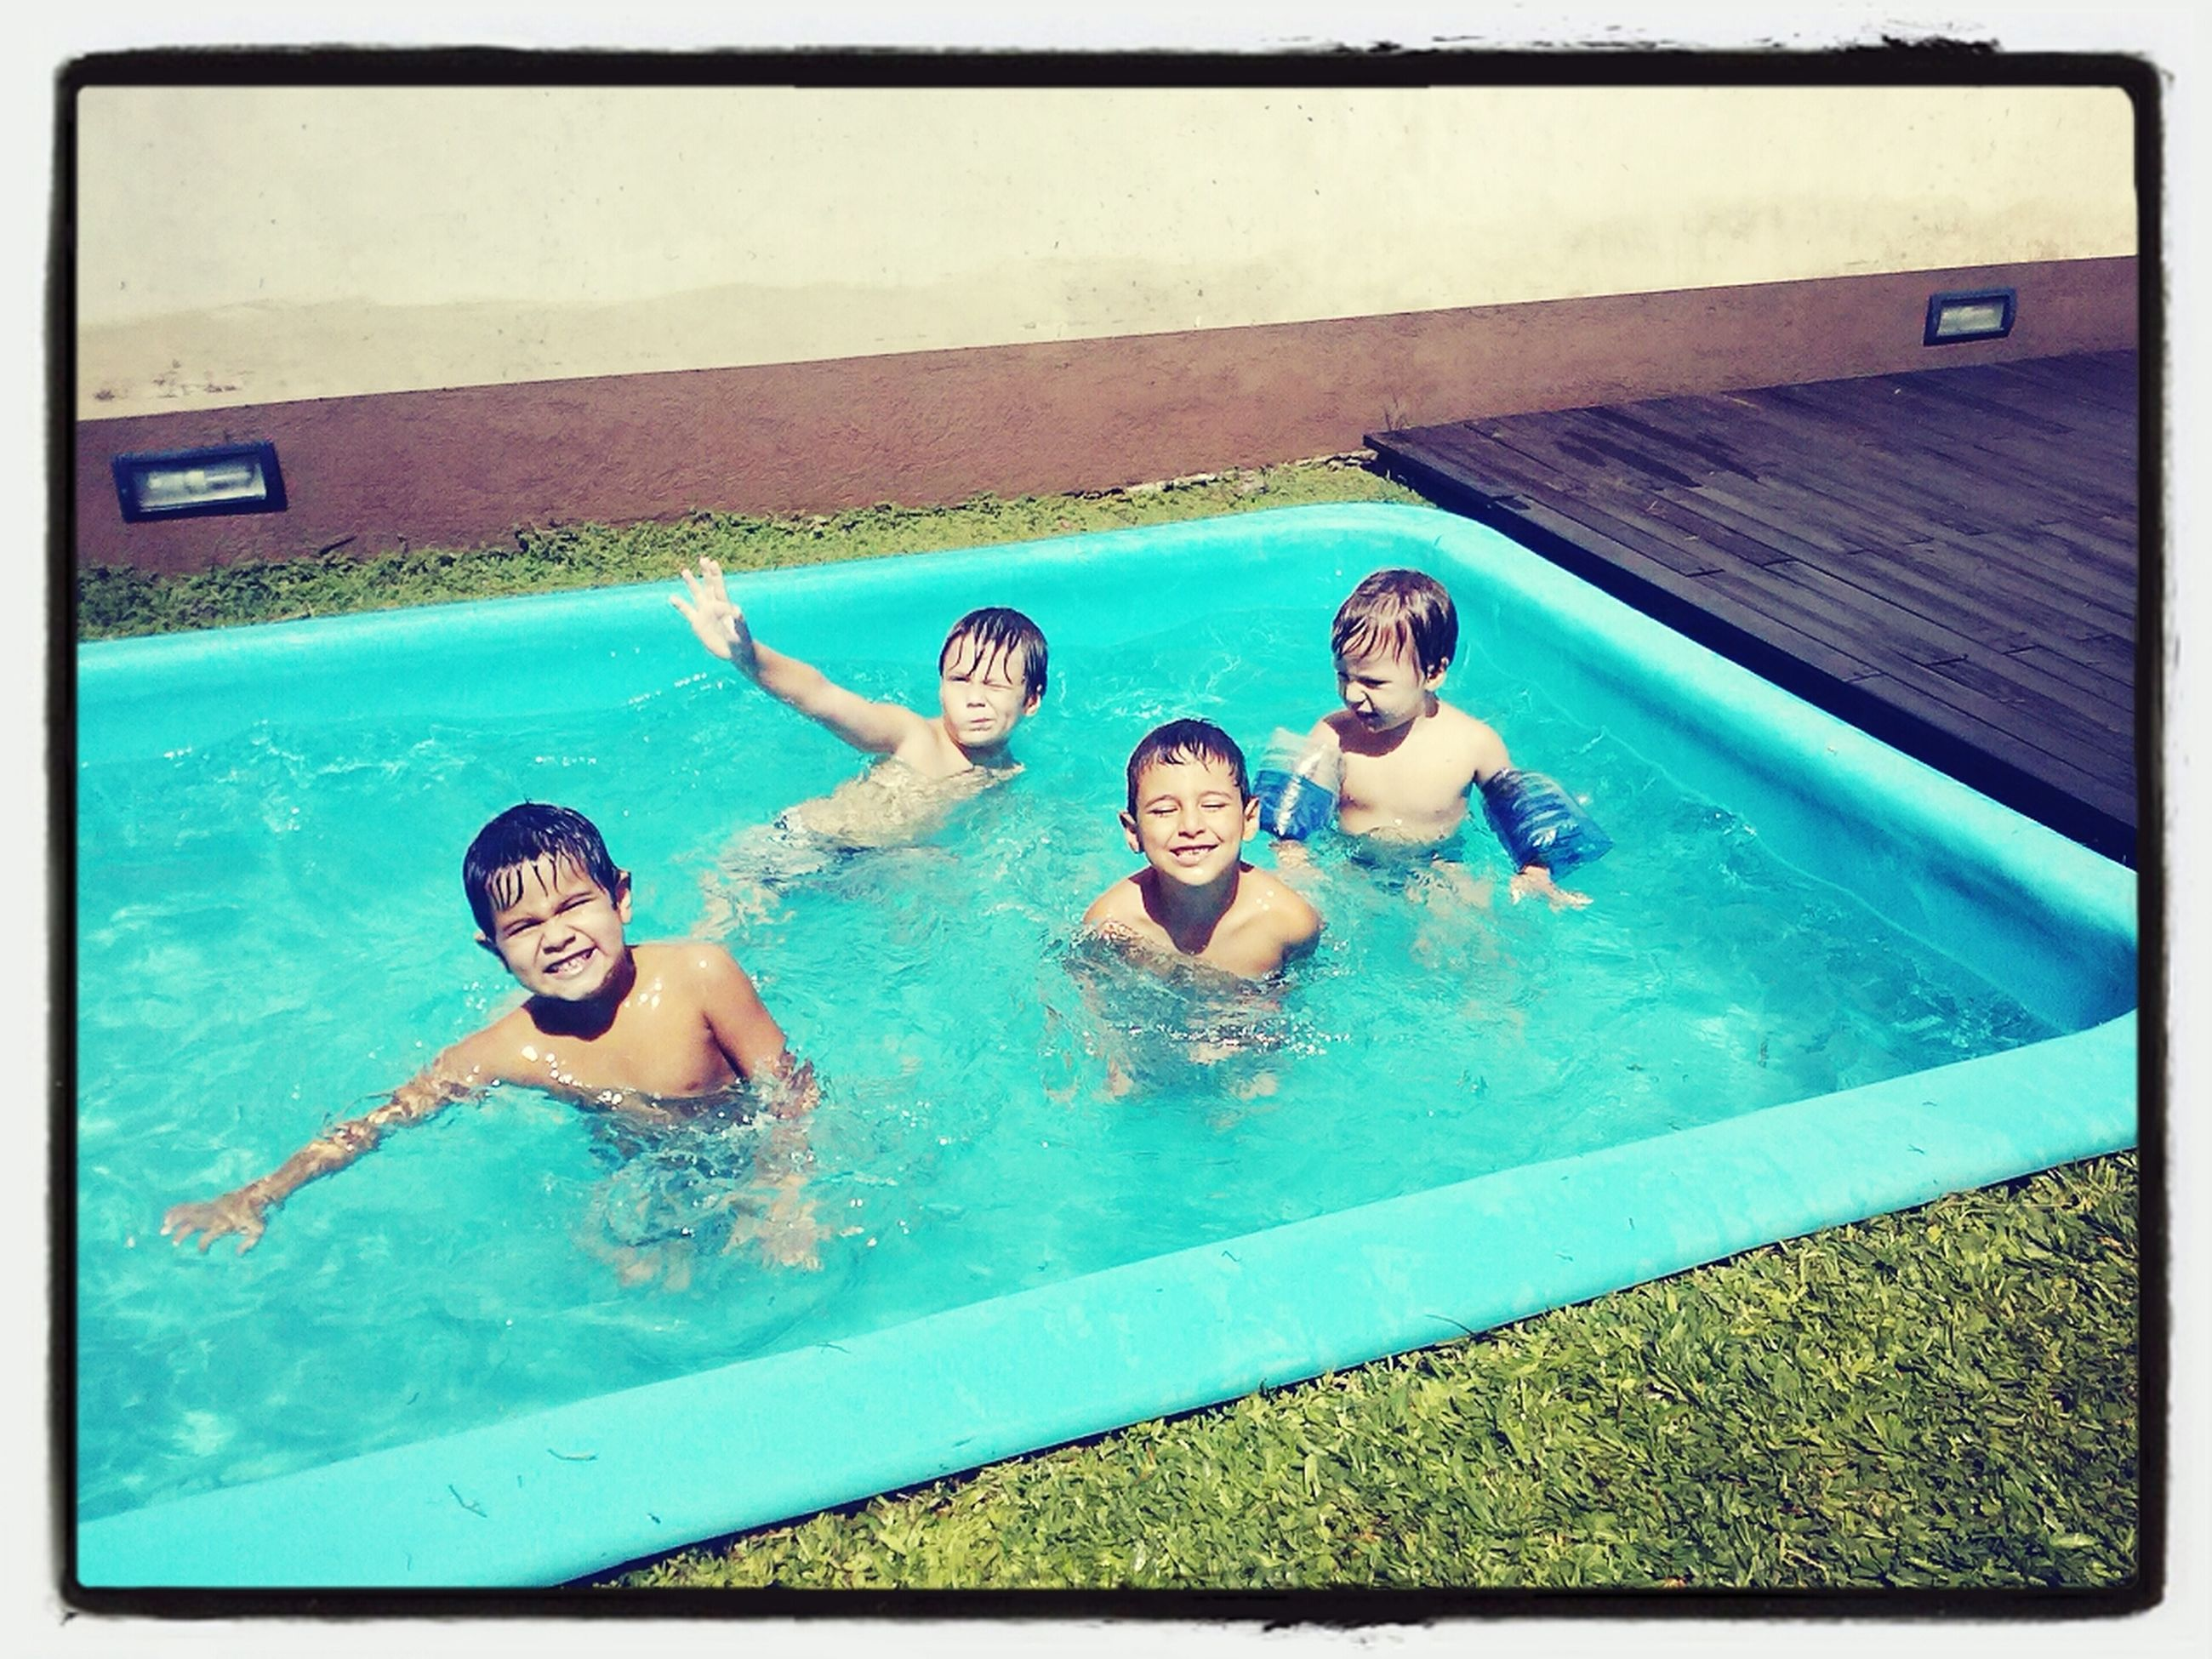 lifestyles, leisure activity, transfer print, swimming pool, auto post production filter, water, enjoyment, person, childhood, high angle view, fun, togetherness, blue, happiness, elementary age, boys, smiling